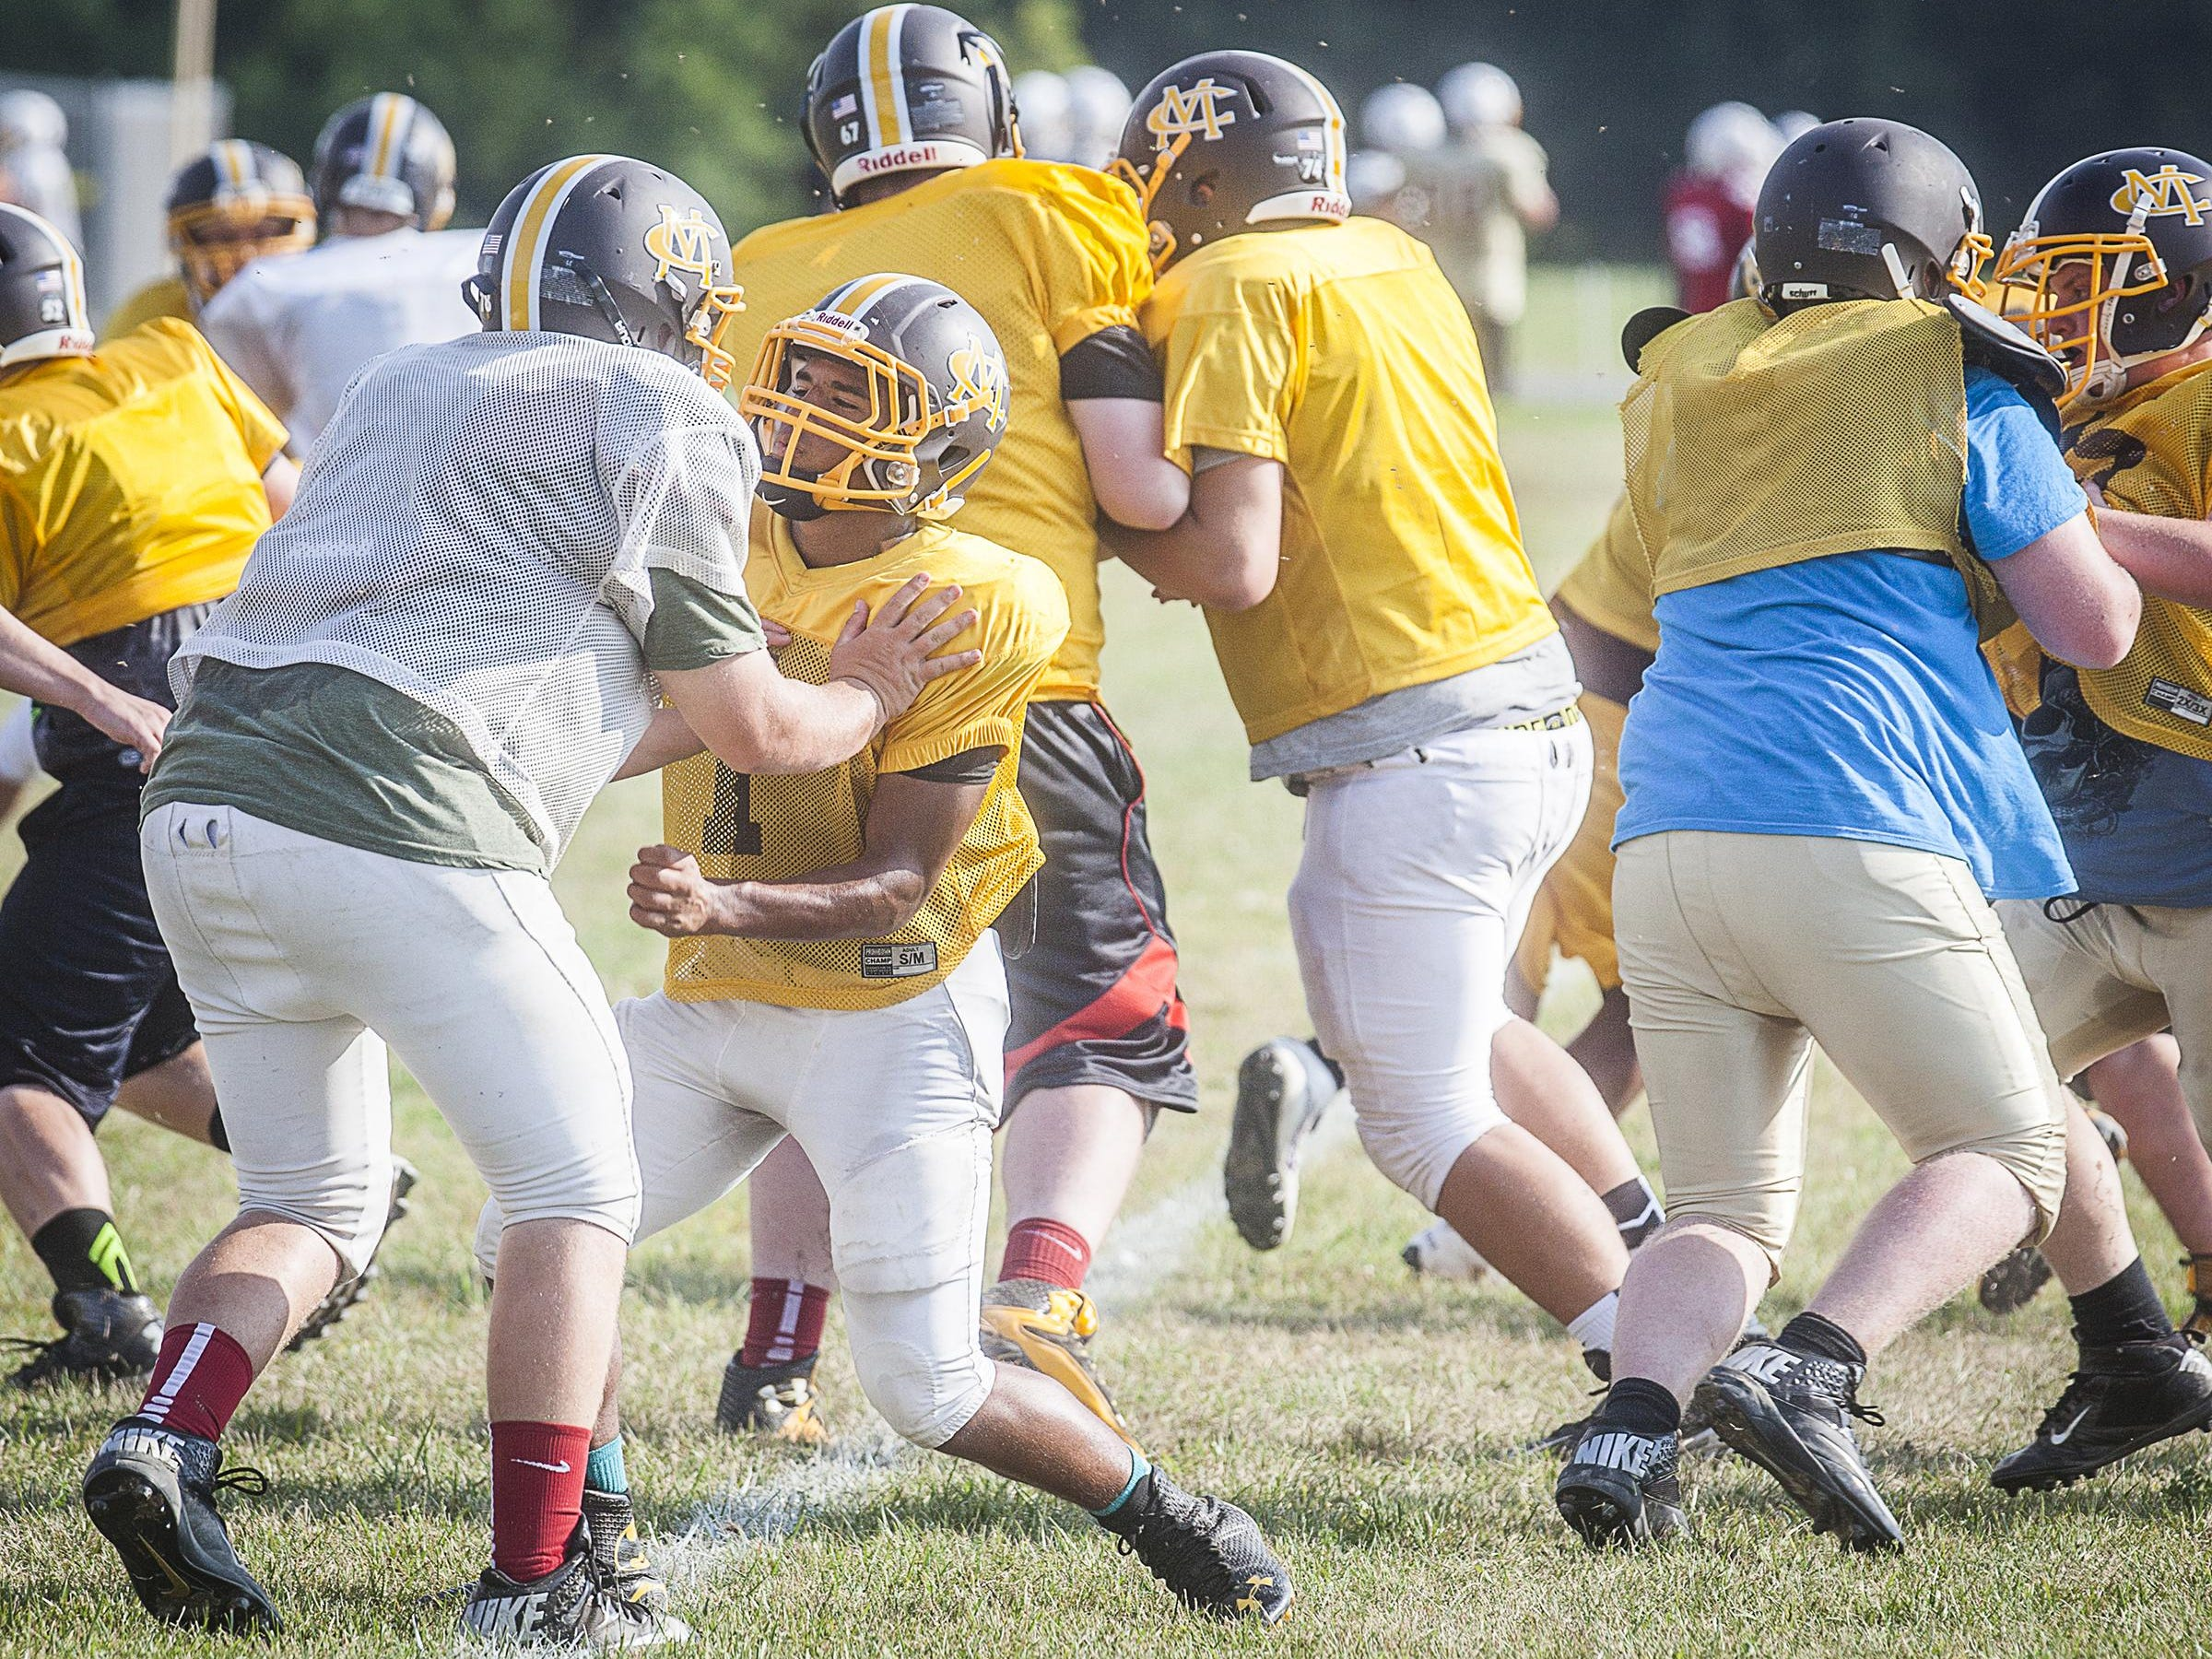 Monroe Central's Tyler Writtenhouse blocks during a drill at Monroe Central High School Tuesday.